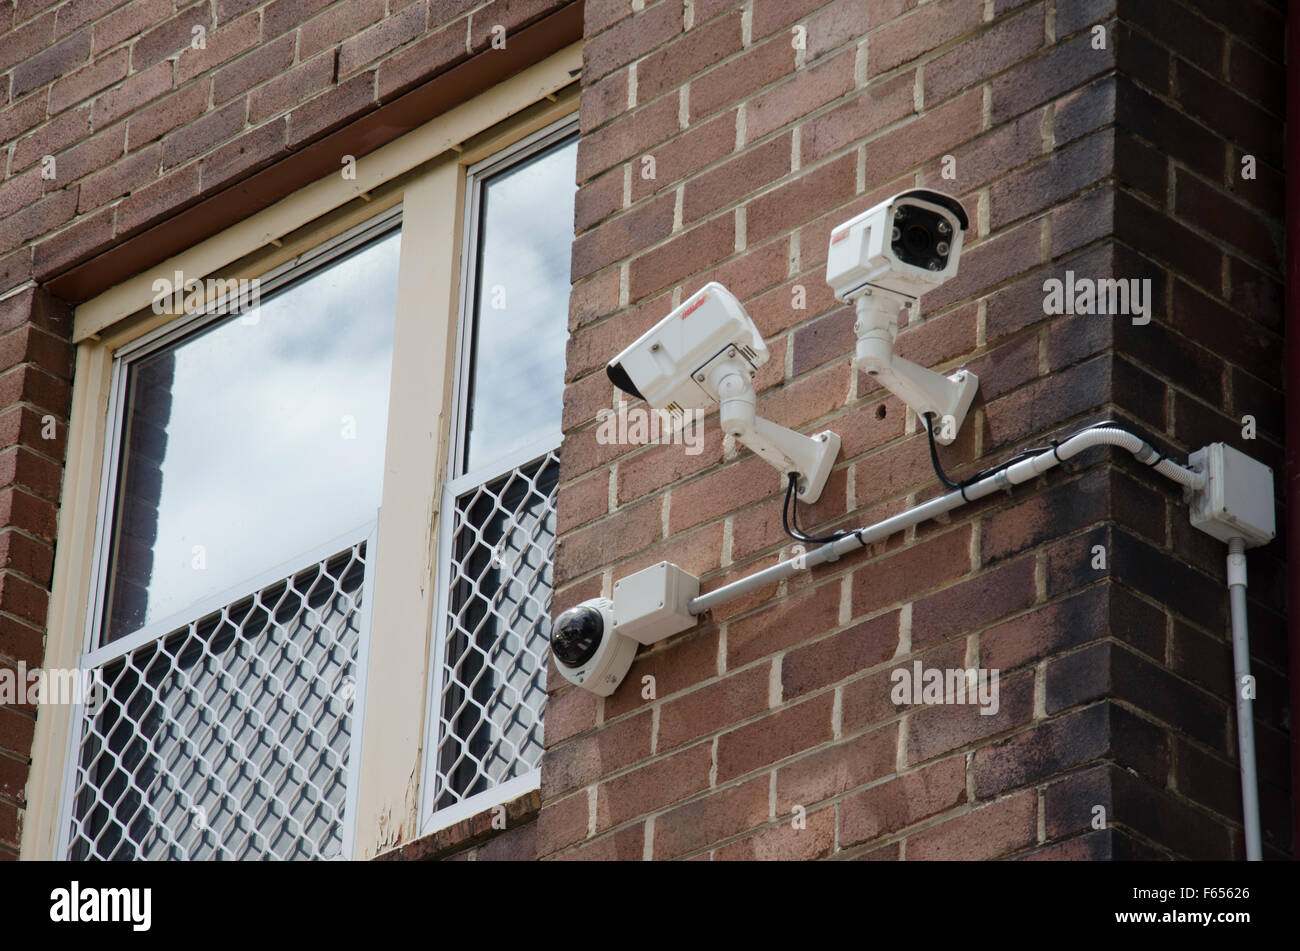 Surveillance or security CCTV camera - Stock Image